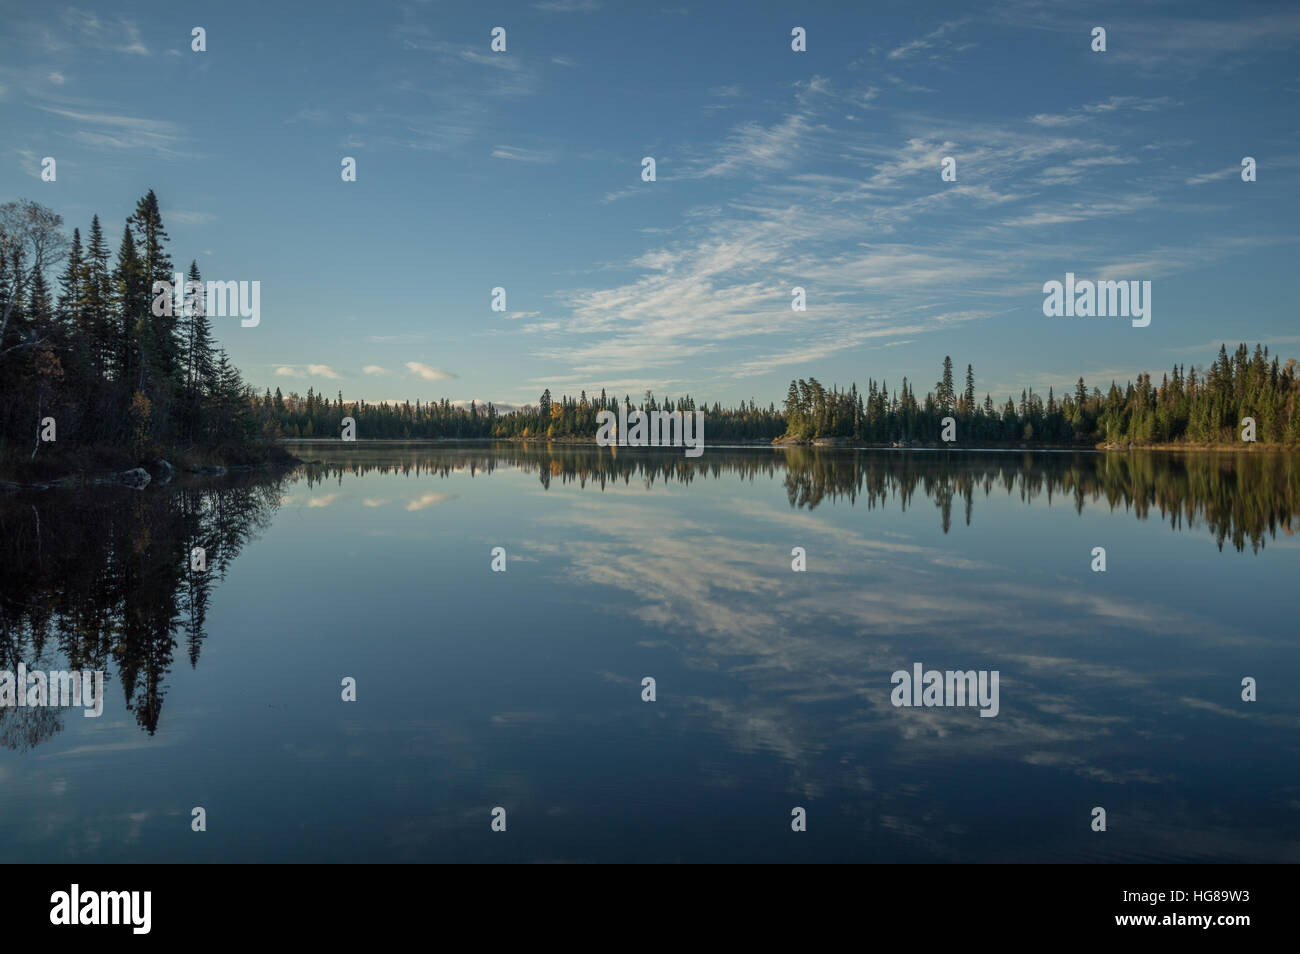 Dead calm lake in early morning with reflections of conifers and wispy cirrus clouds - Stock Image